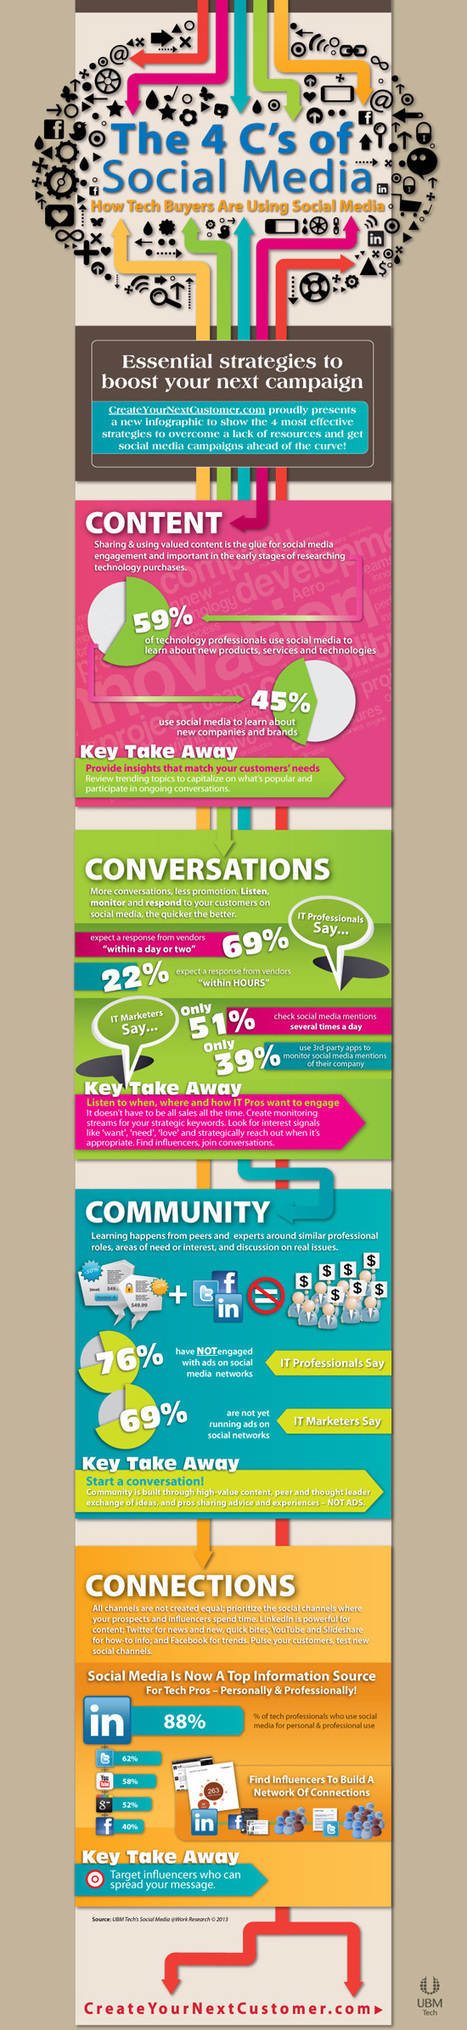 35 Cheatsheets Infographics For Social Media Marketers